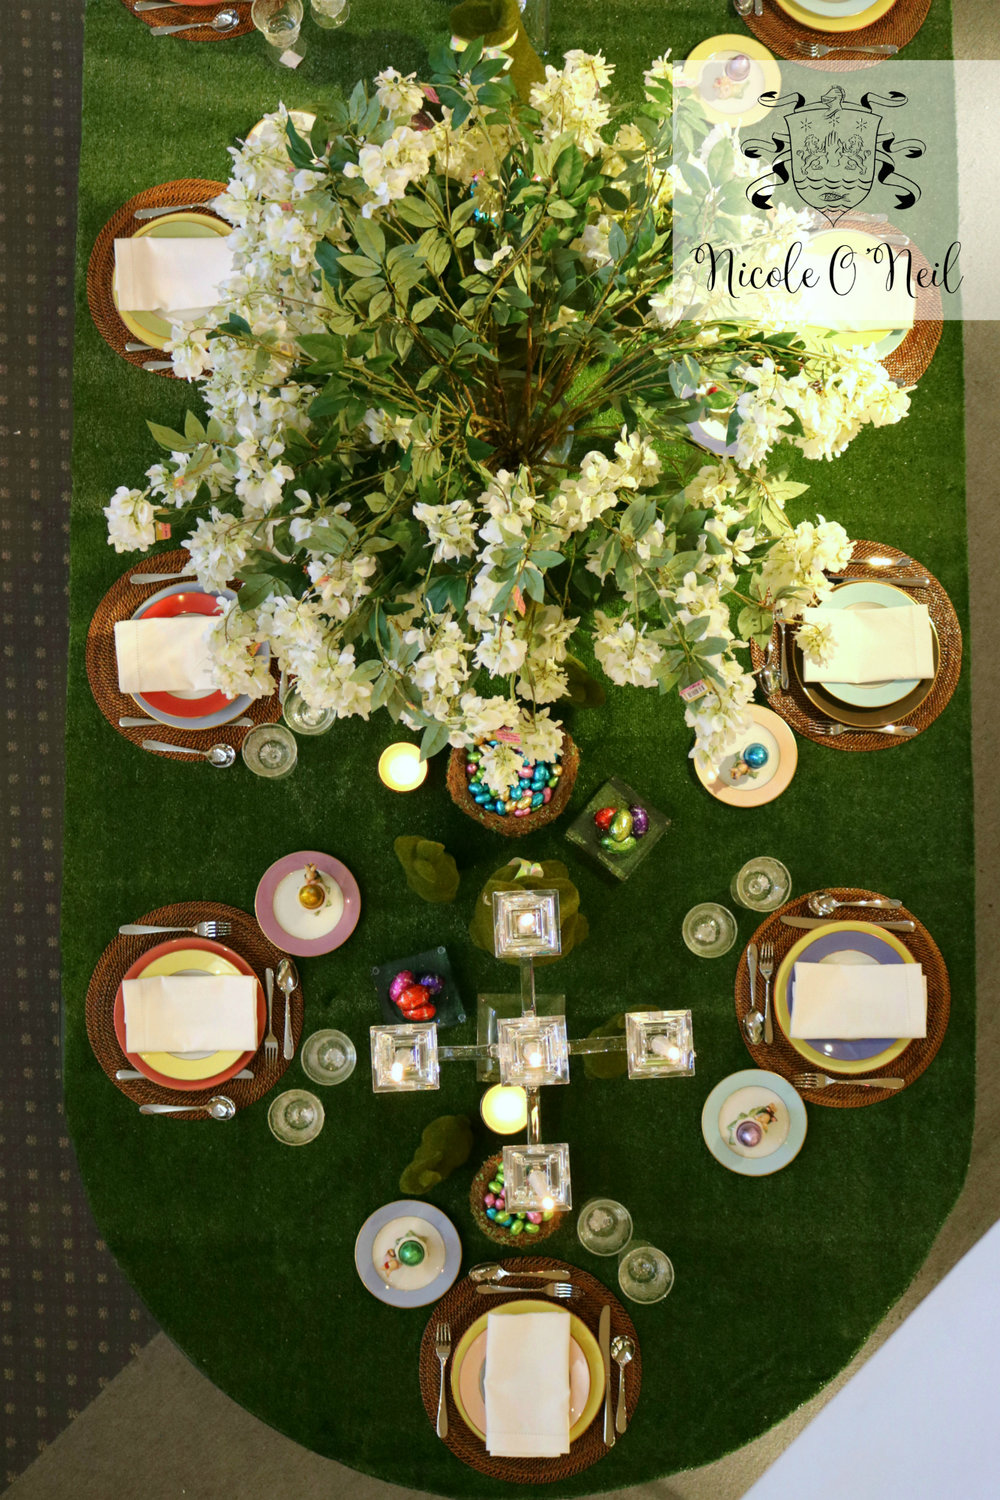 Top View of Peter's of Kensington Easter Table Easter Table Setting Inspiration - How to Decorate An Easter Table